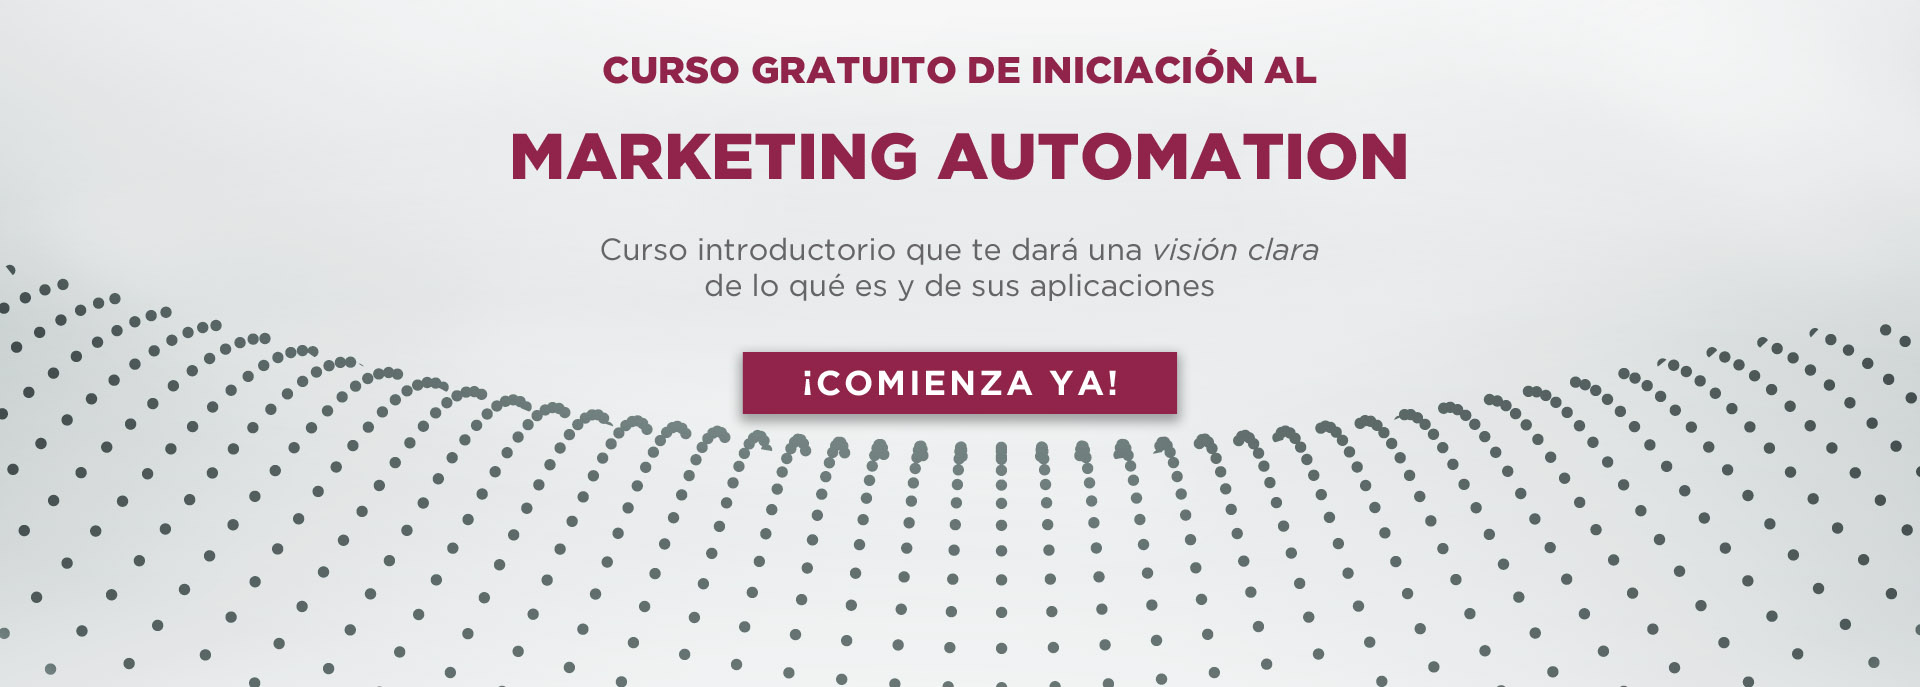 bn_curso-mkt-automation2